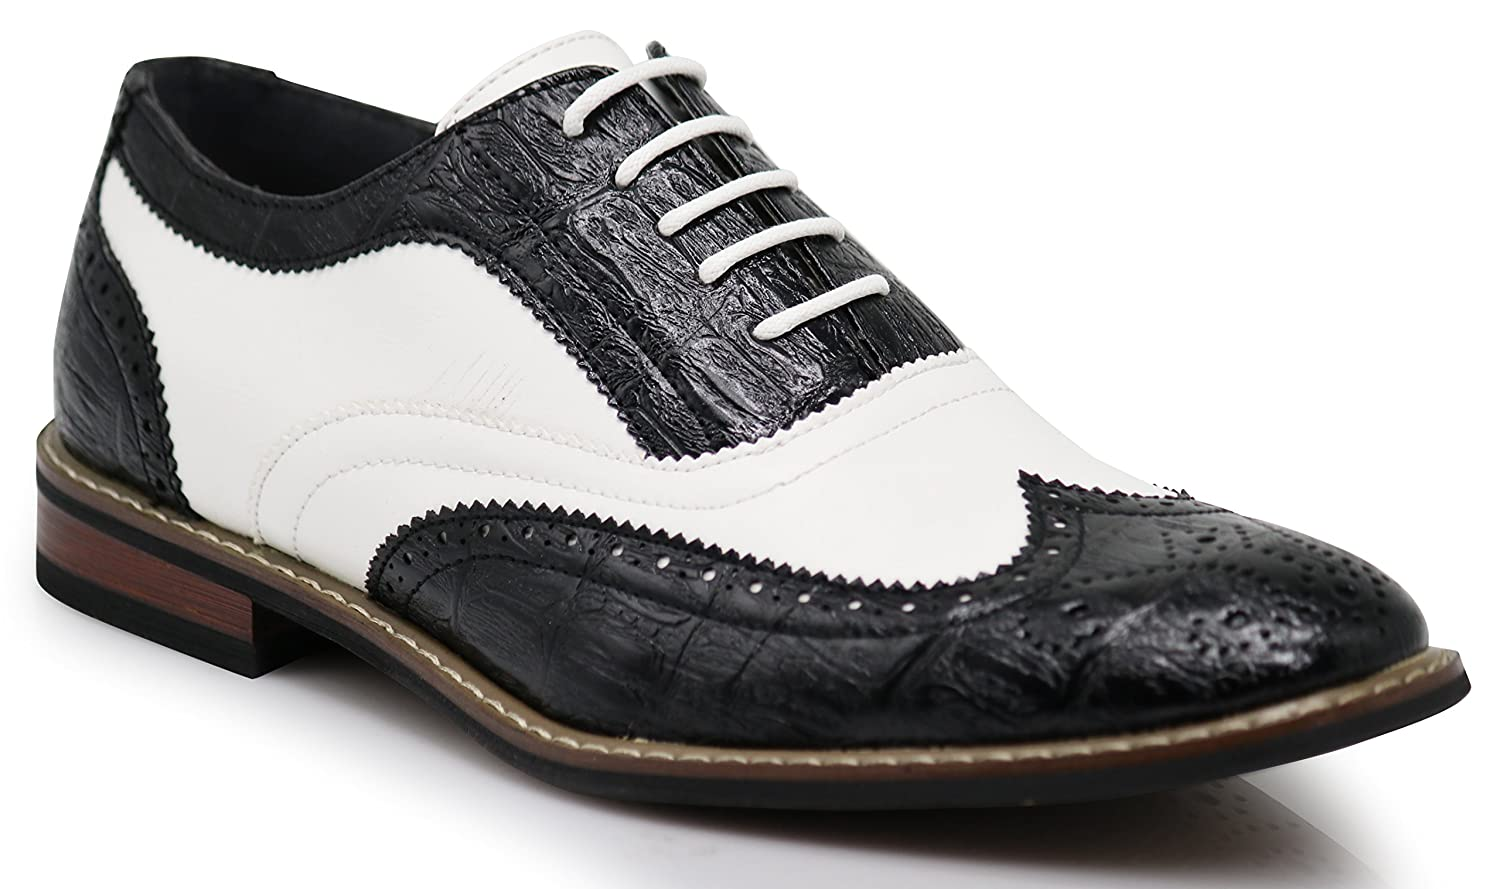 Men's 1950s Shoes Styles- Classics to Saddles to Rockabilly Mens Dress Oxfords Shoes Italy Modern Designer Wingtip Captoe 2 Tone Lace up Shoes $31.98 AT vintagedancer.com